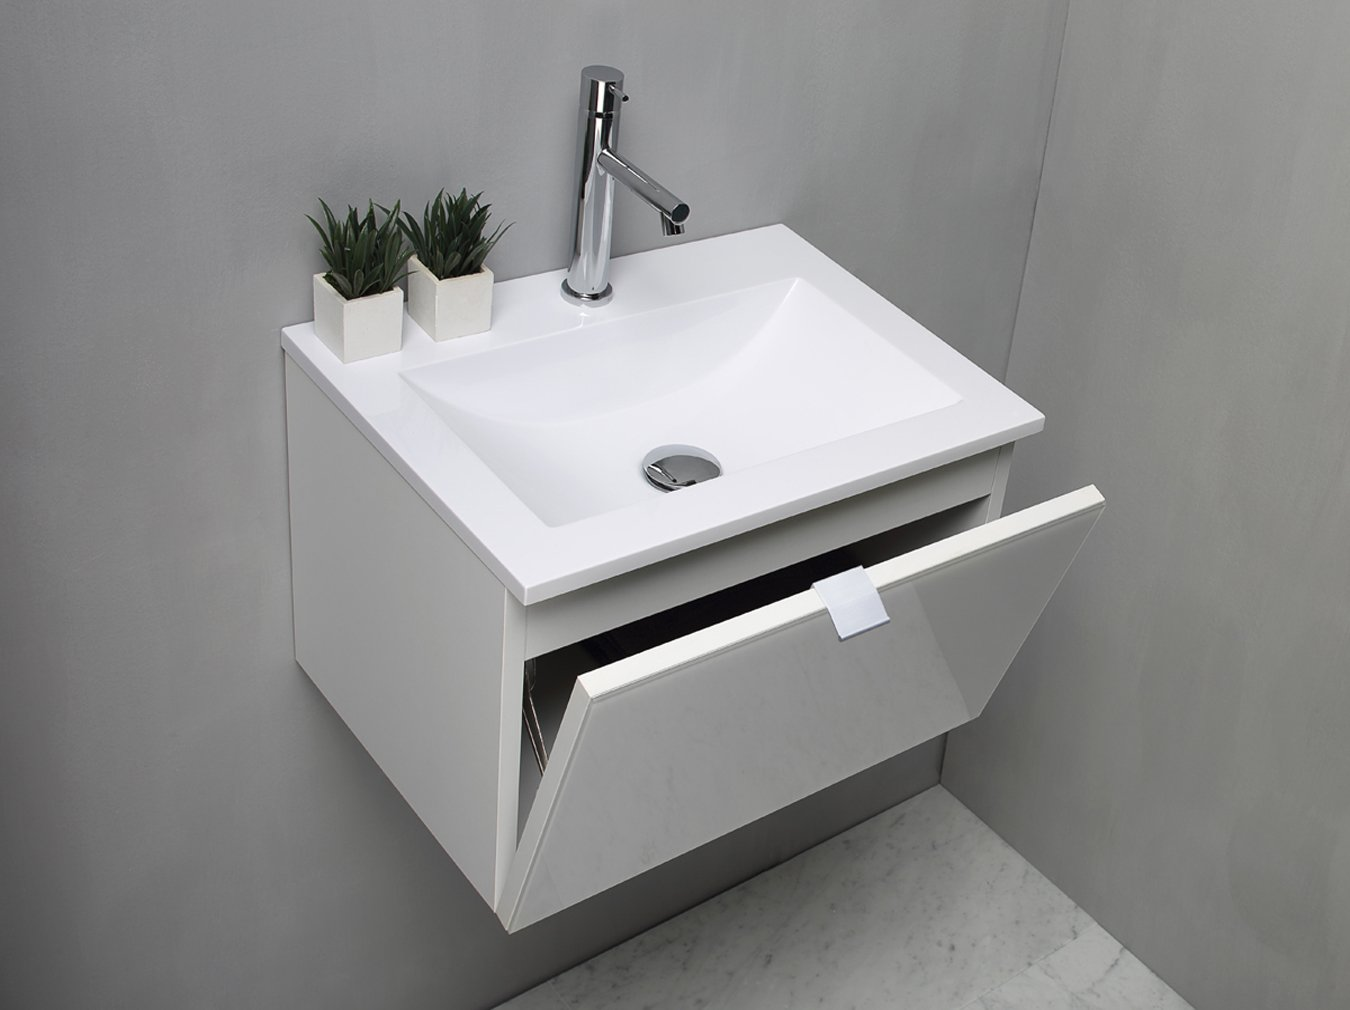 Awesome lavandino bagno sospeso ideas for Lavello bagno sospeso